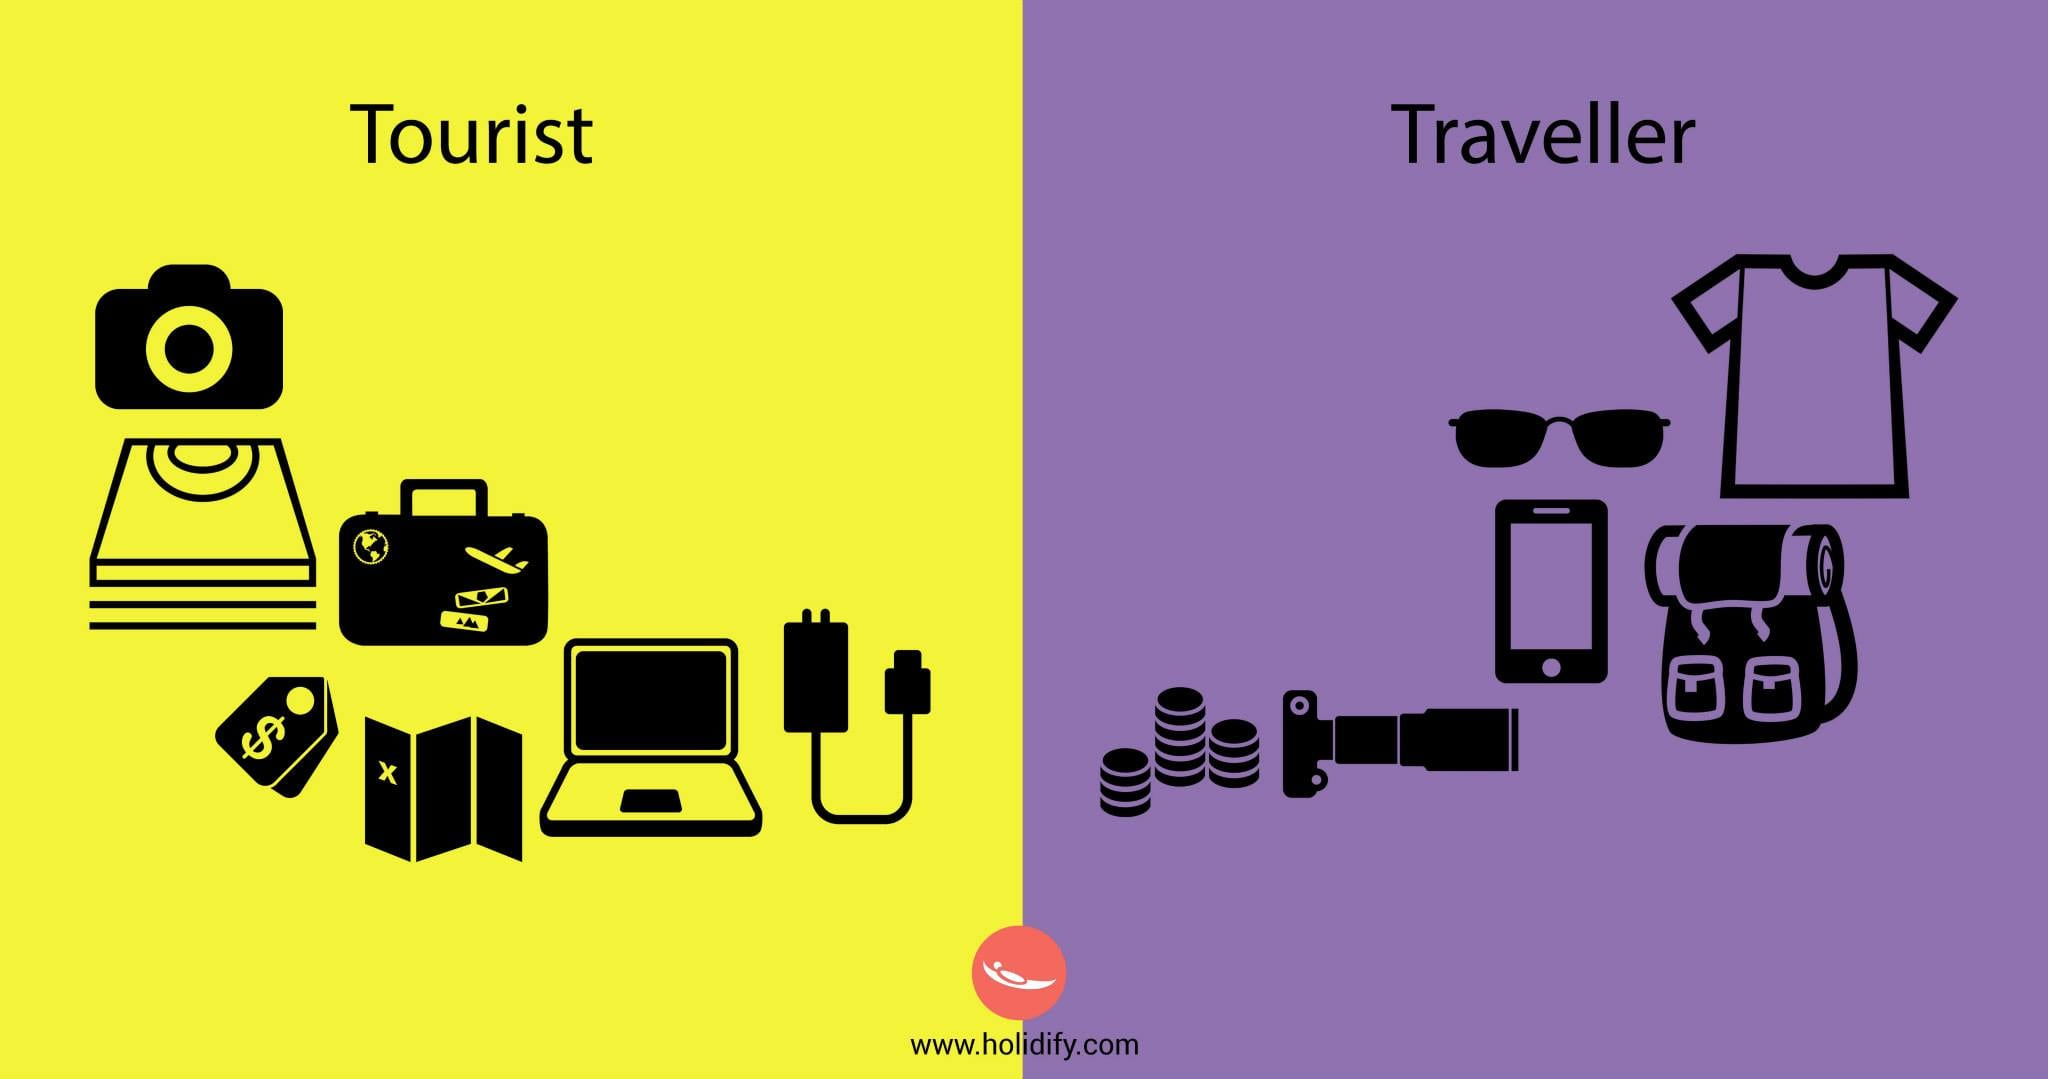 tourist-vs-traveller-freeyork-2